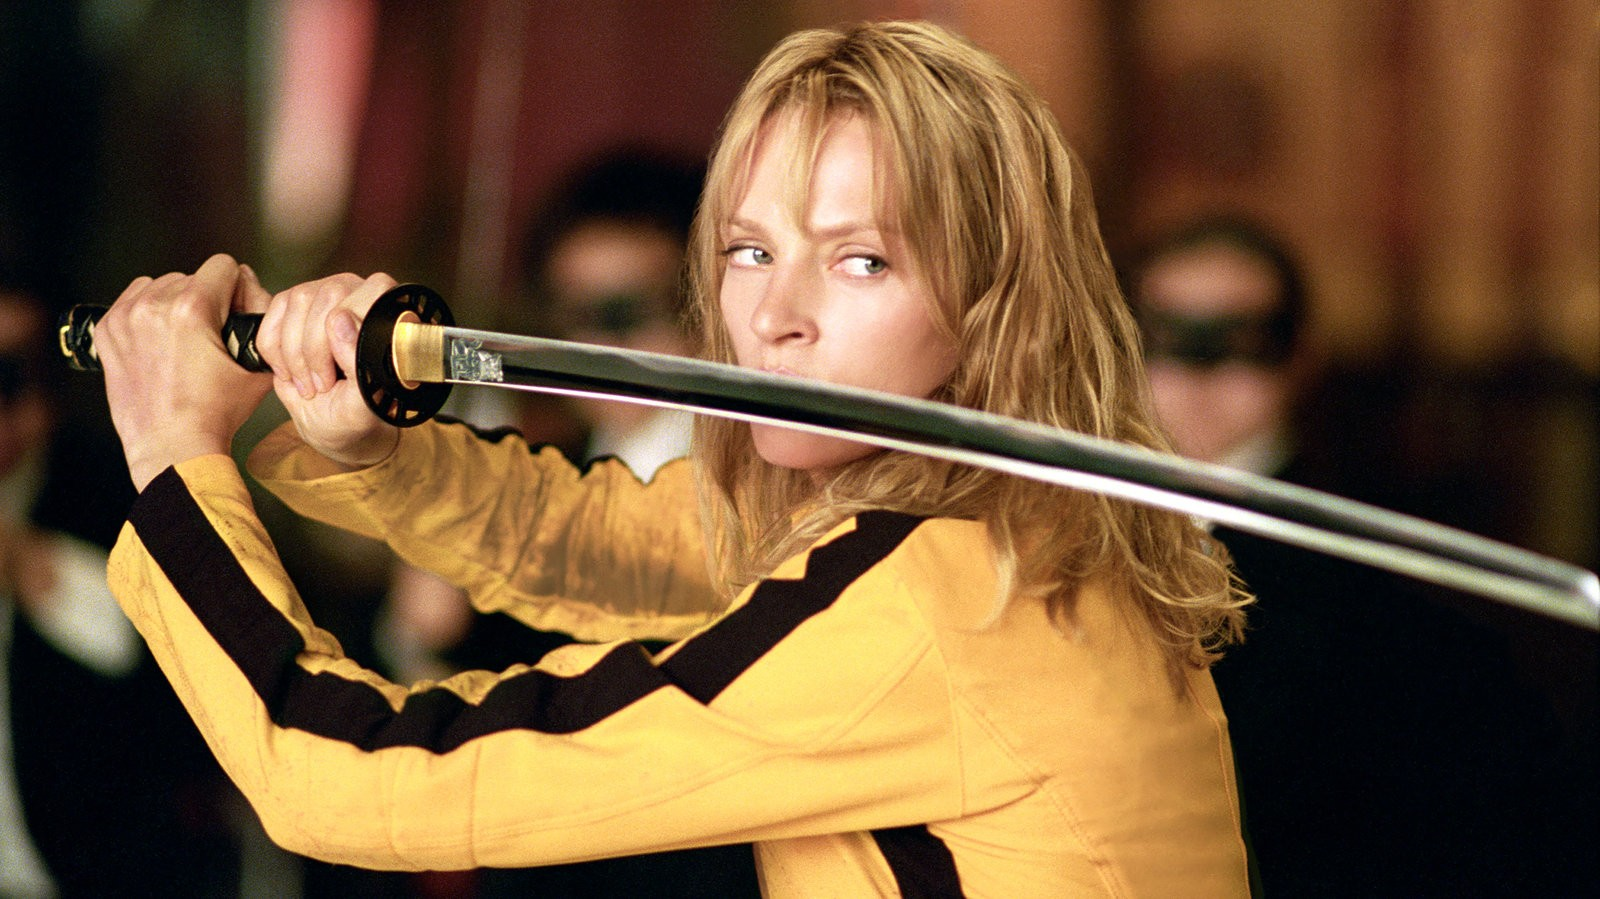 Every Quentin Tarantino Movie Ranked from Worst to Best